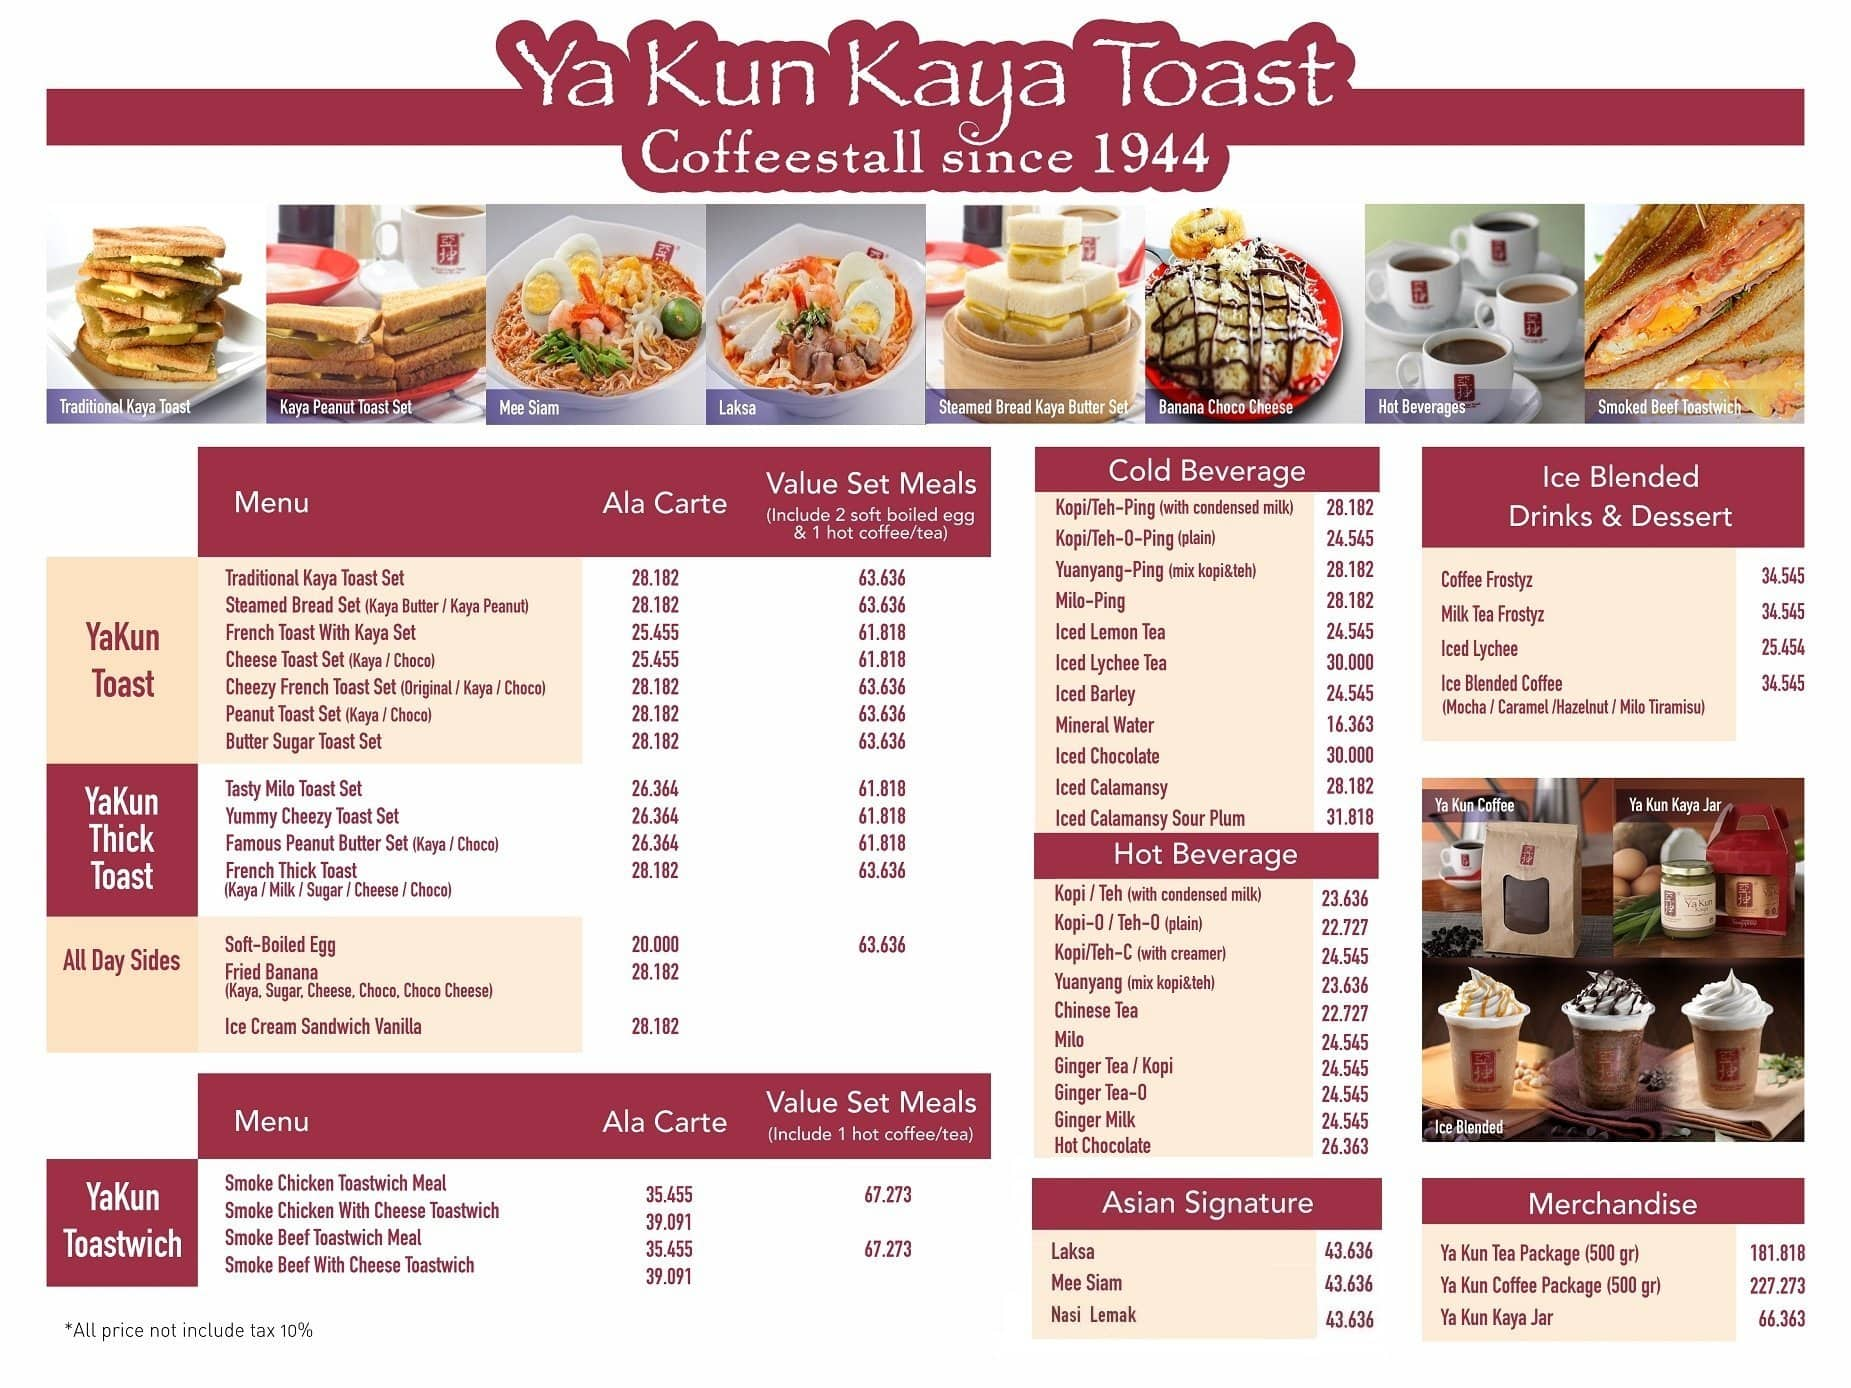 application case ya kun kaya toast Ya kun kaya toast  in case of forecasting outlet staff needs, any of the  systems can be used like ratio analysis, trend analysis, scatter plot.